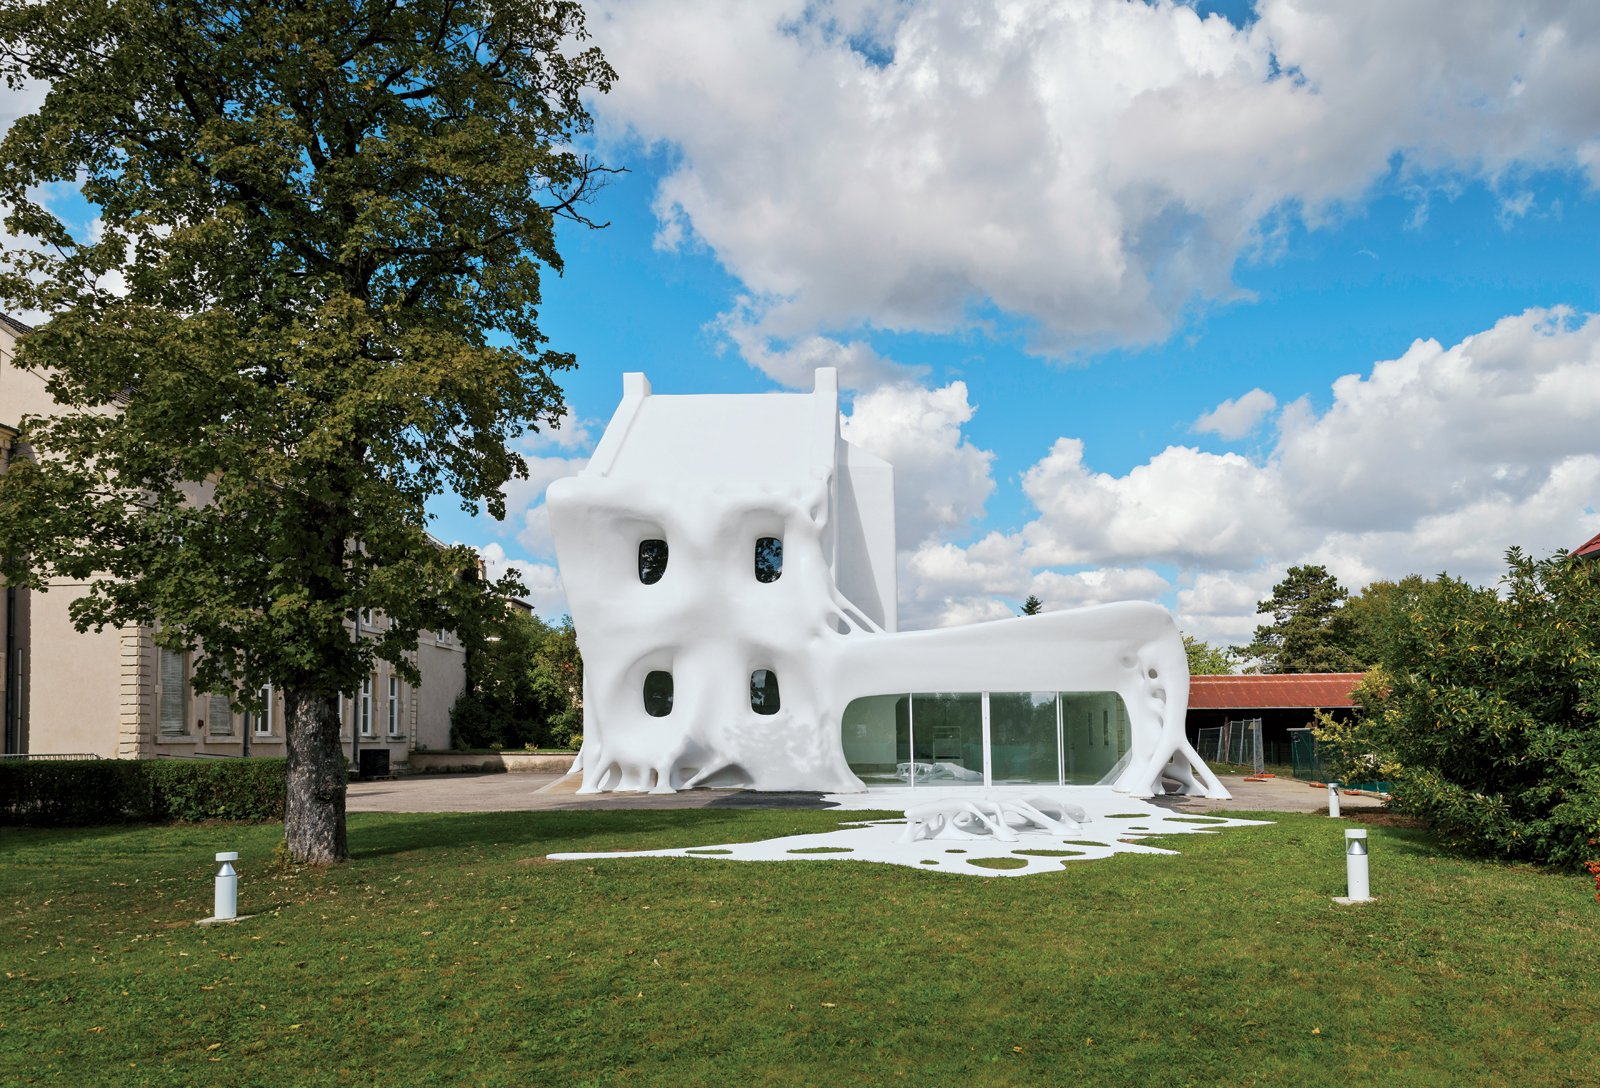 """Christophe Berdaguer and Marie Péjus named their building """"Gue(ho)st House"""" after Marcel Duchamp's aphorism """"A guest + a host = a ghost,"""" which appeared on a piece of ephemera he made in 1953. The duo translated the artist's wordplay into architect-ural form, and said: """"A house is a place where the hosts and guests share spaces. This project is like a third person, who in this context, looks like a ghost.""""  Photo 1 of 1 in Surrealist Architecture: Synagogue de Delme in France"""